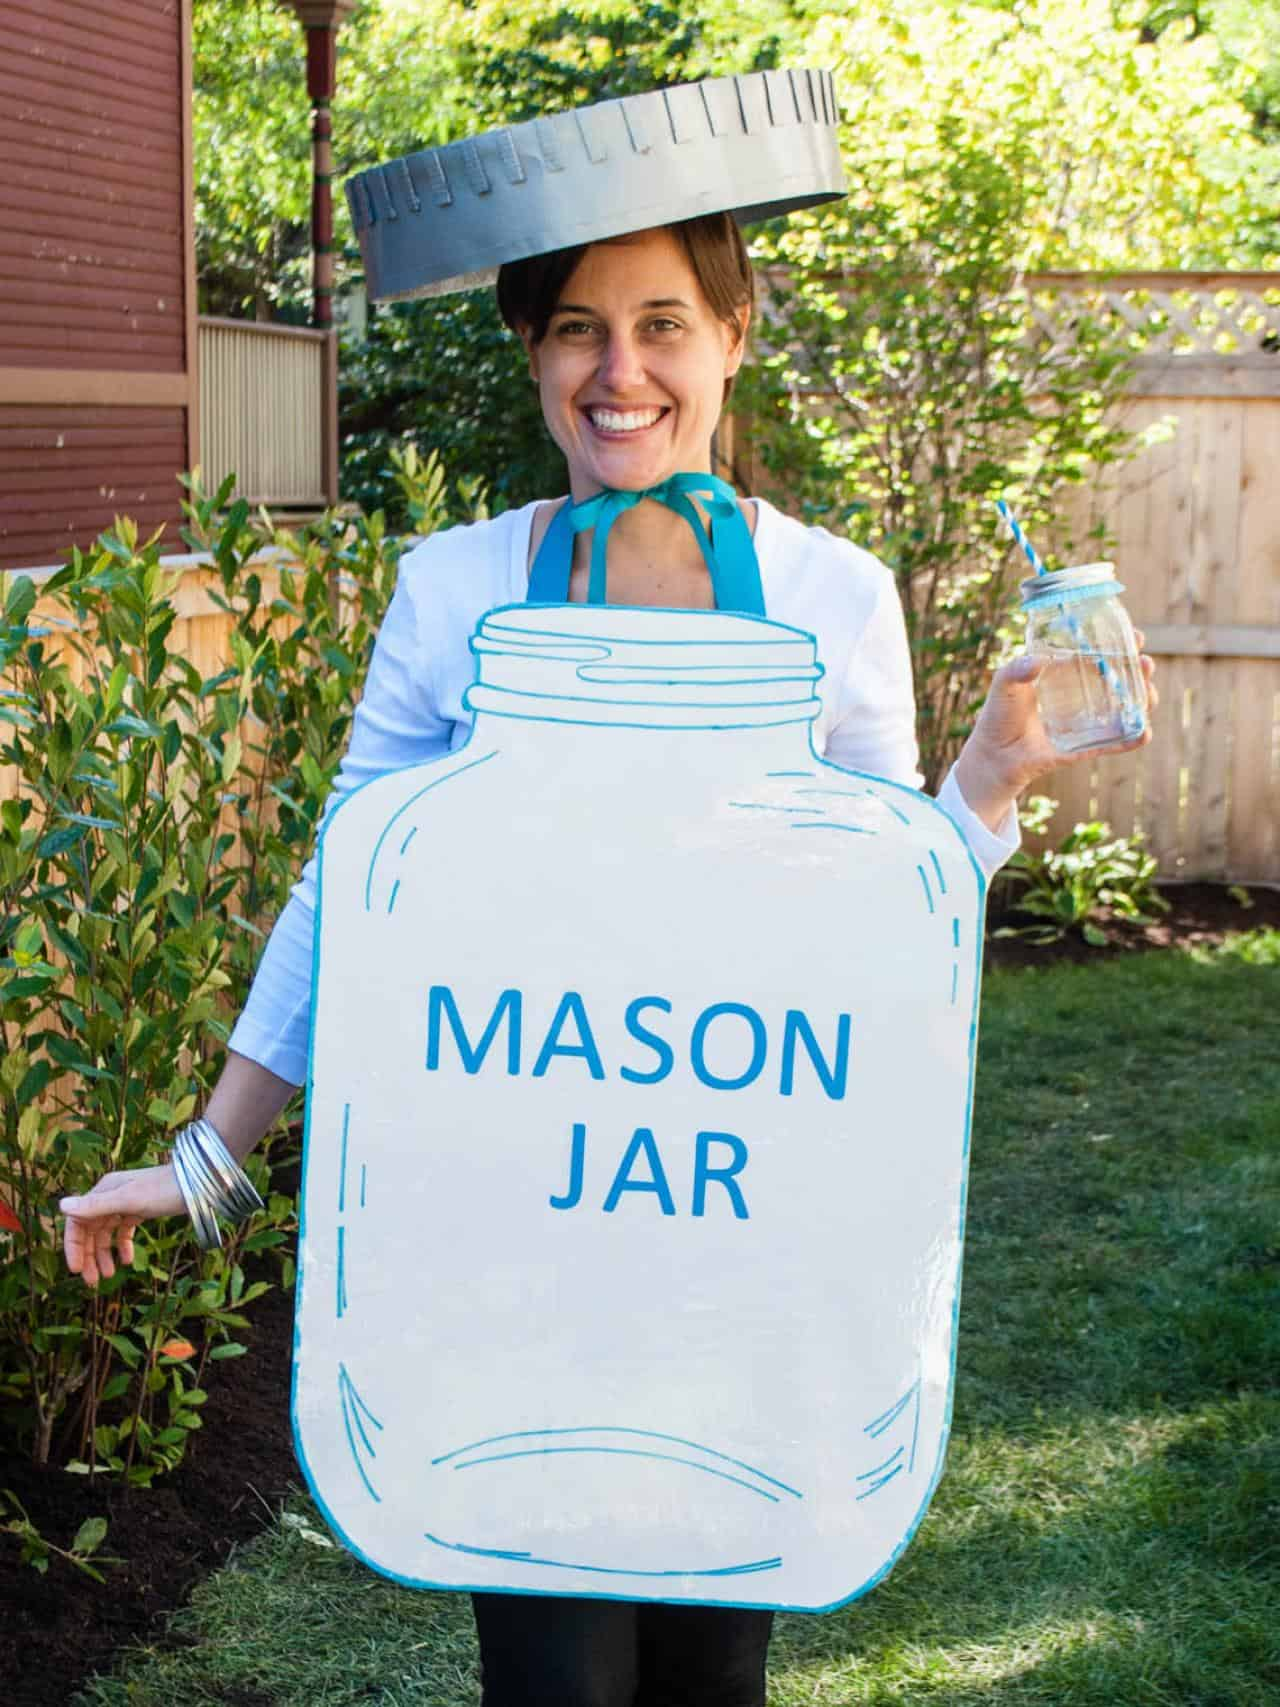 Mason jar diy costume